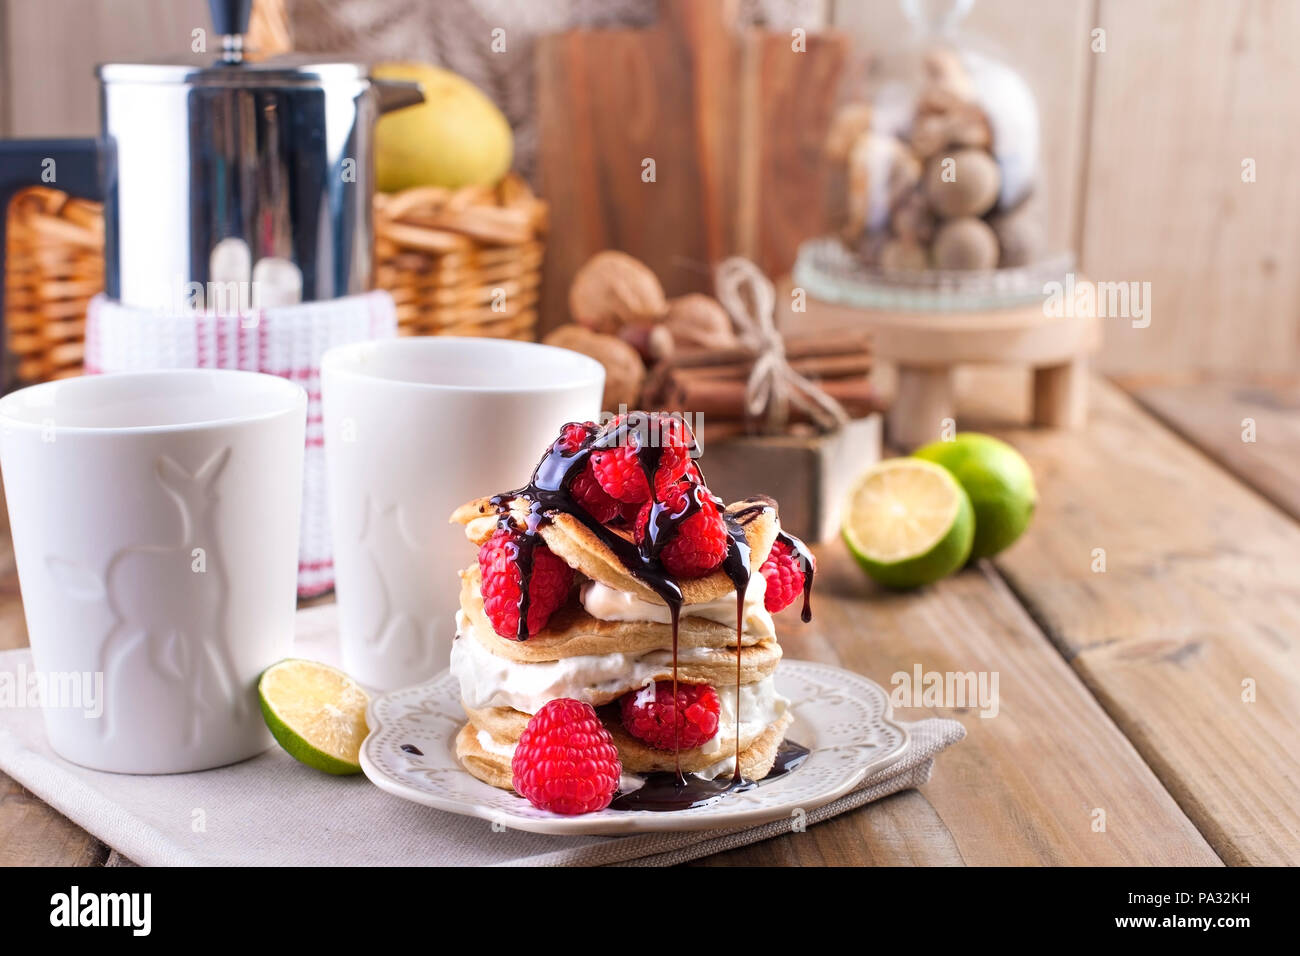 Sweet home punkcakes with white cream and fresh red raspberry berries. Two glasses of tea for breakfast and a kettle. on a wooden background. free space for text or advertising. Stock Photo